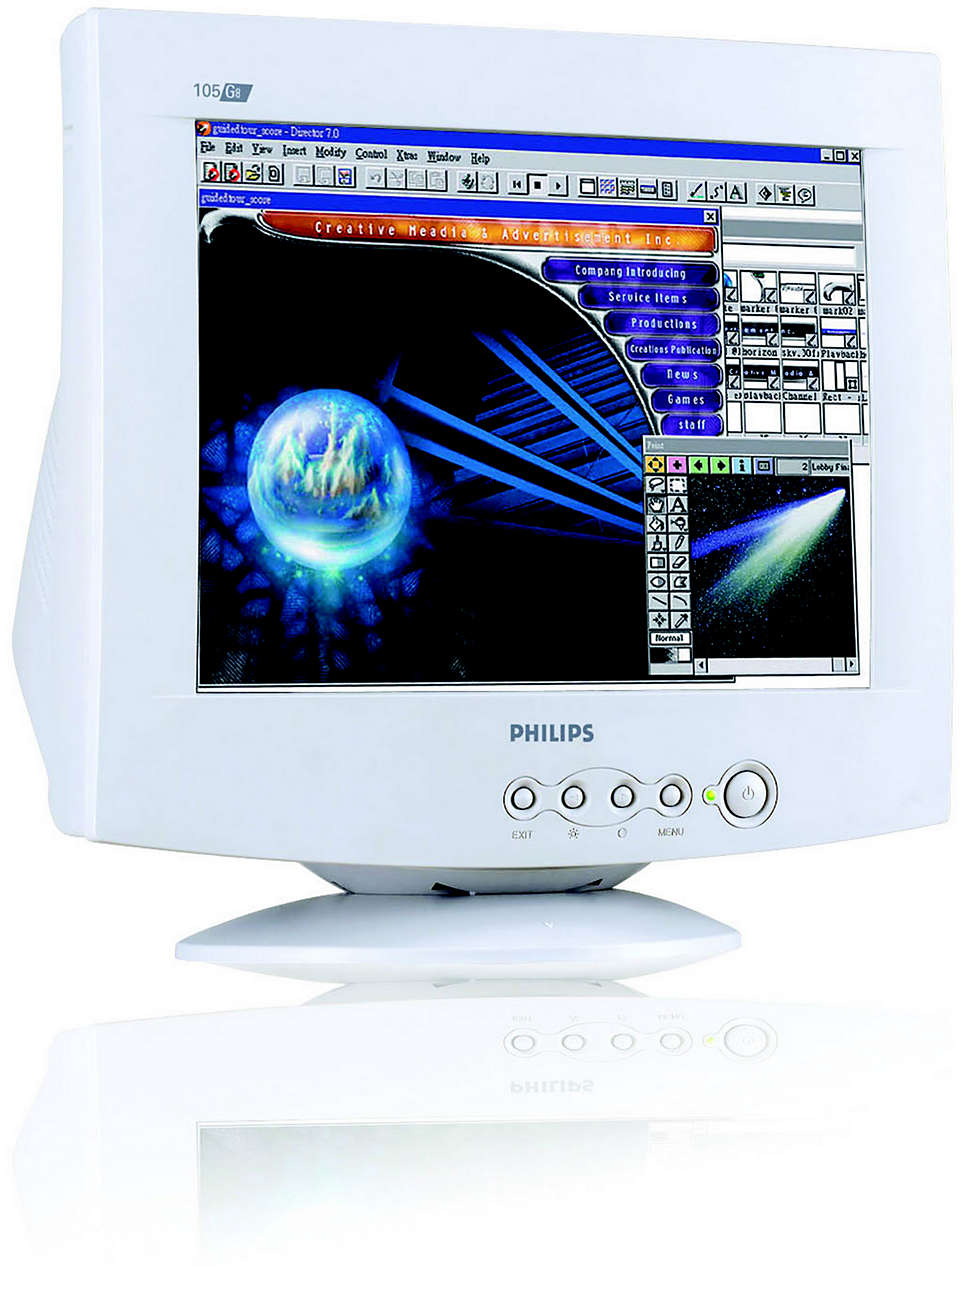 great CRT value and quality plus lead-free design